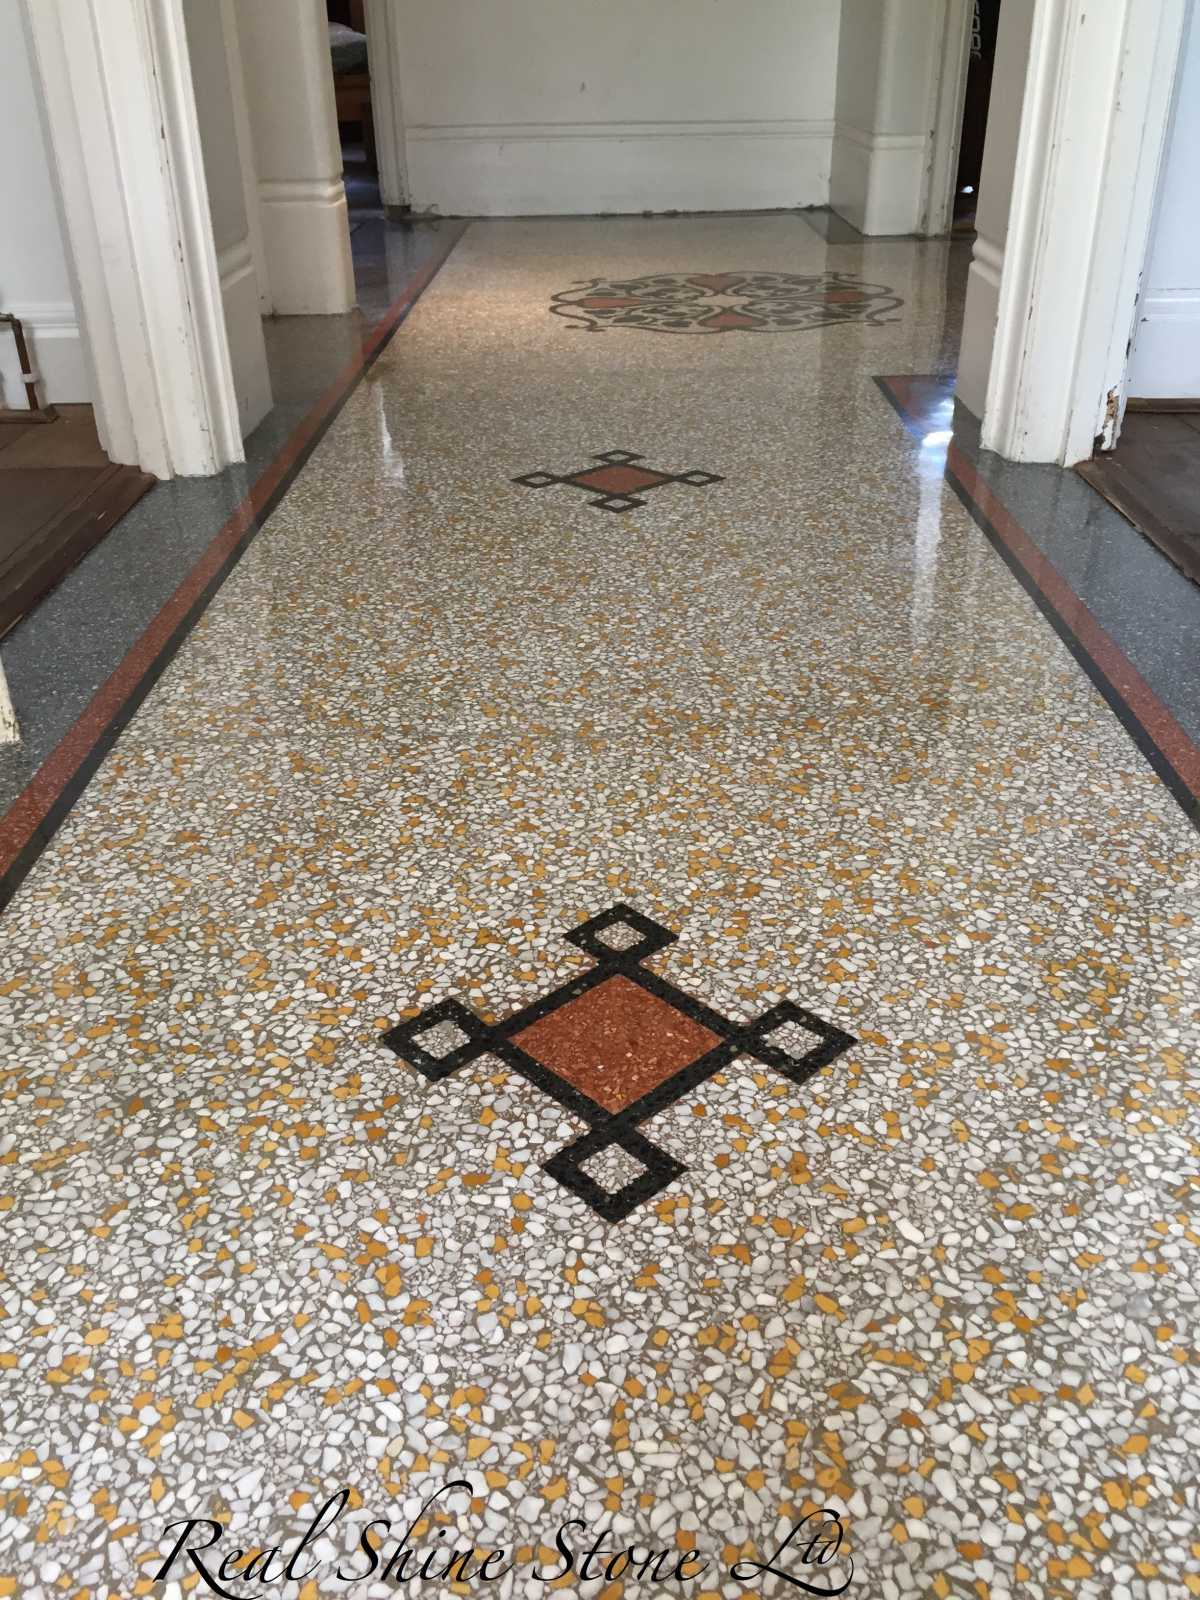 Terrazzo restoration in Cricklewood, London